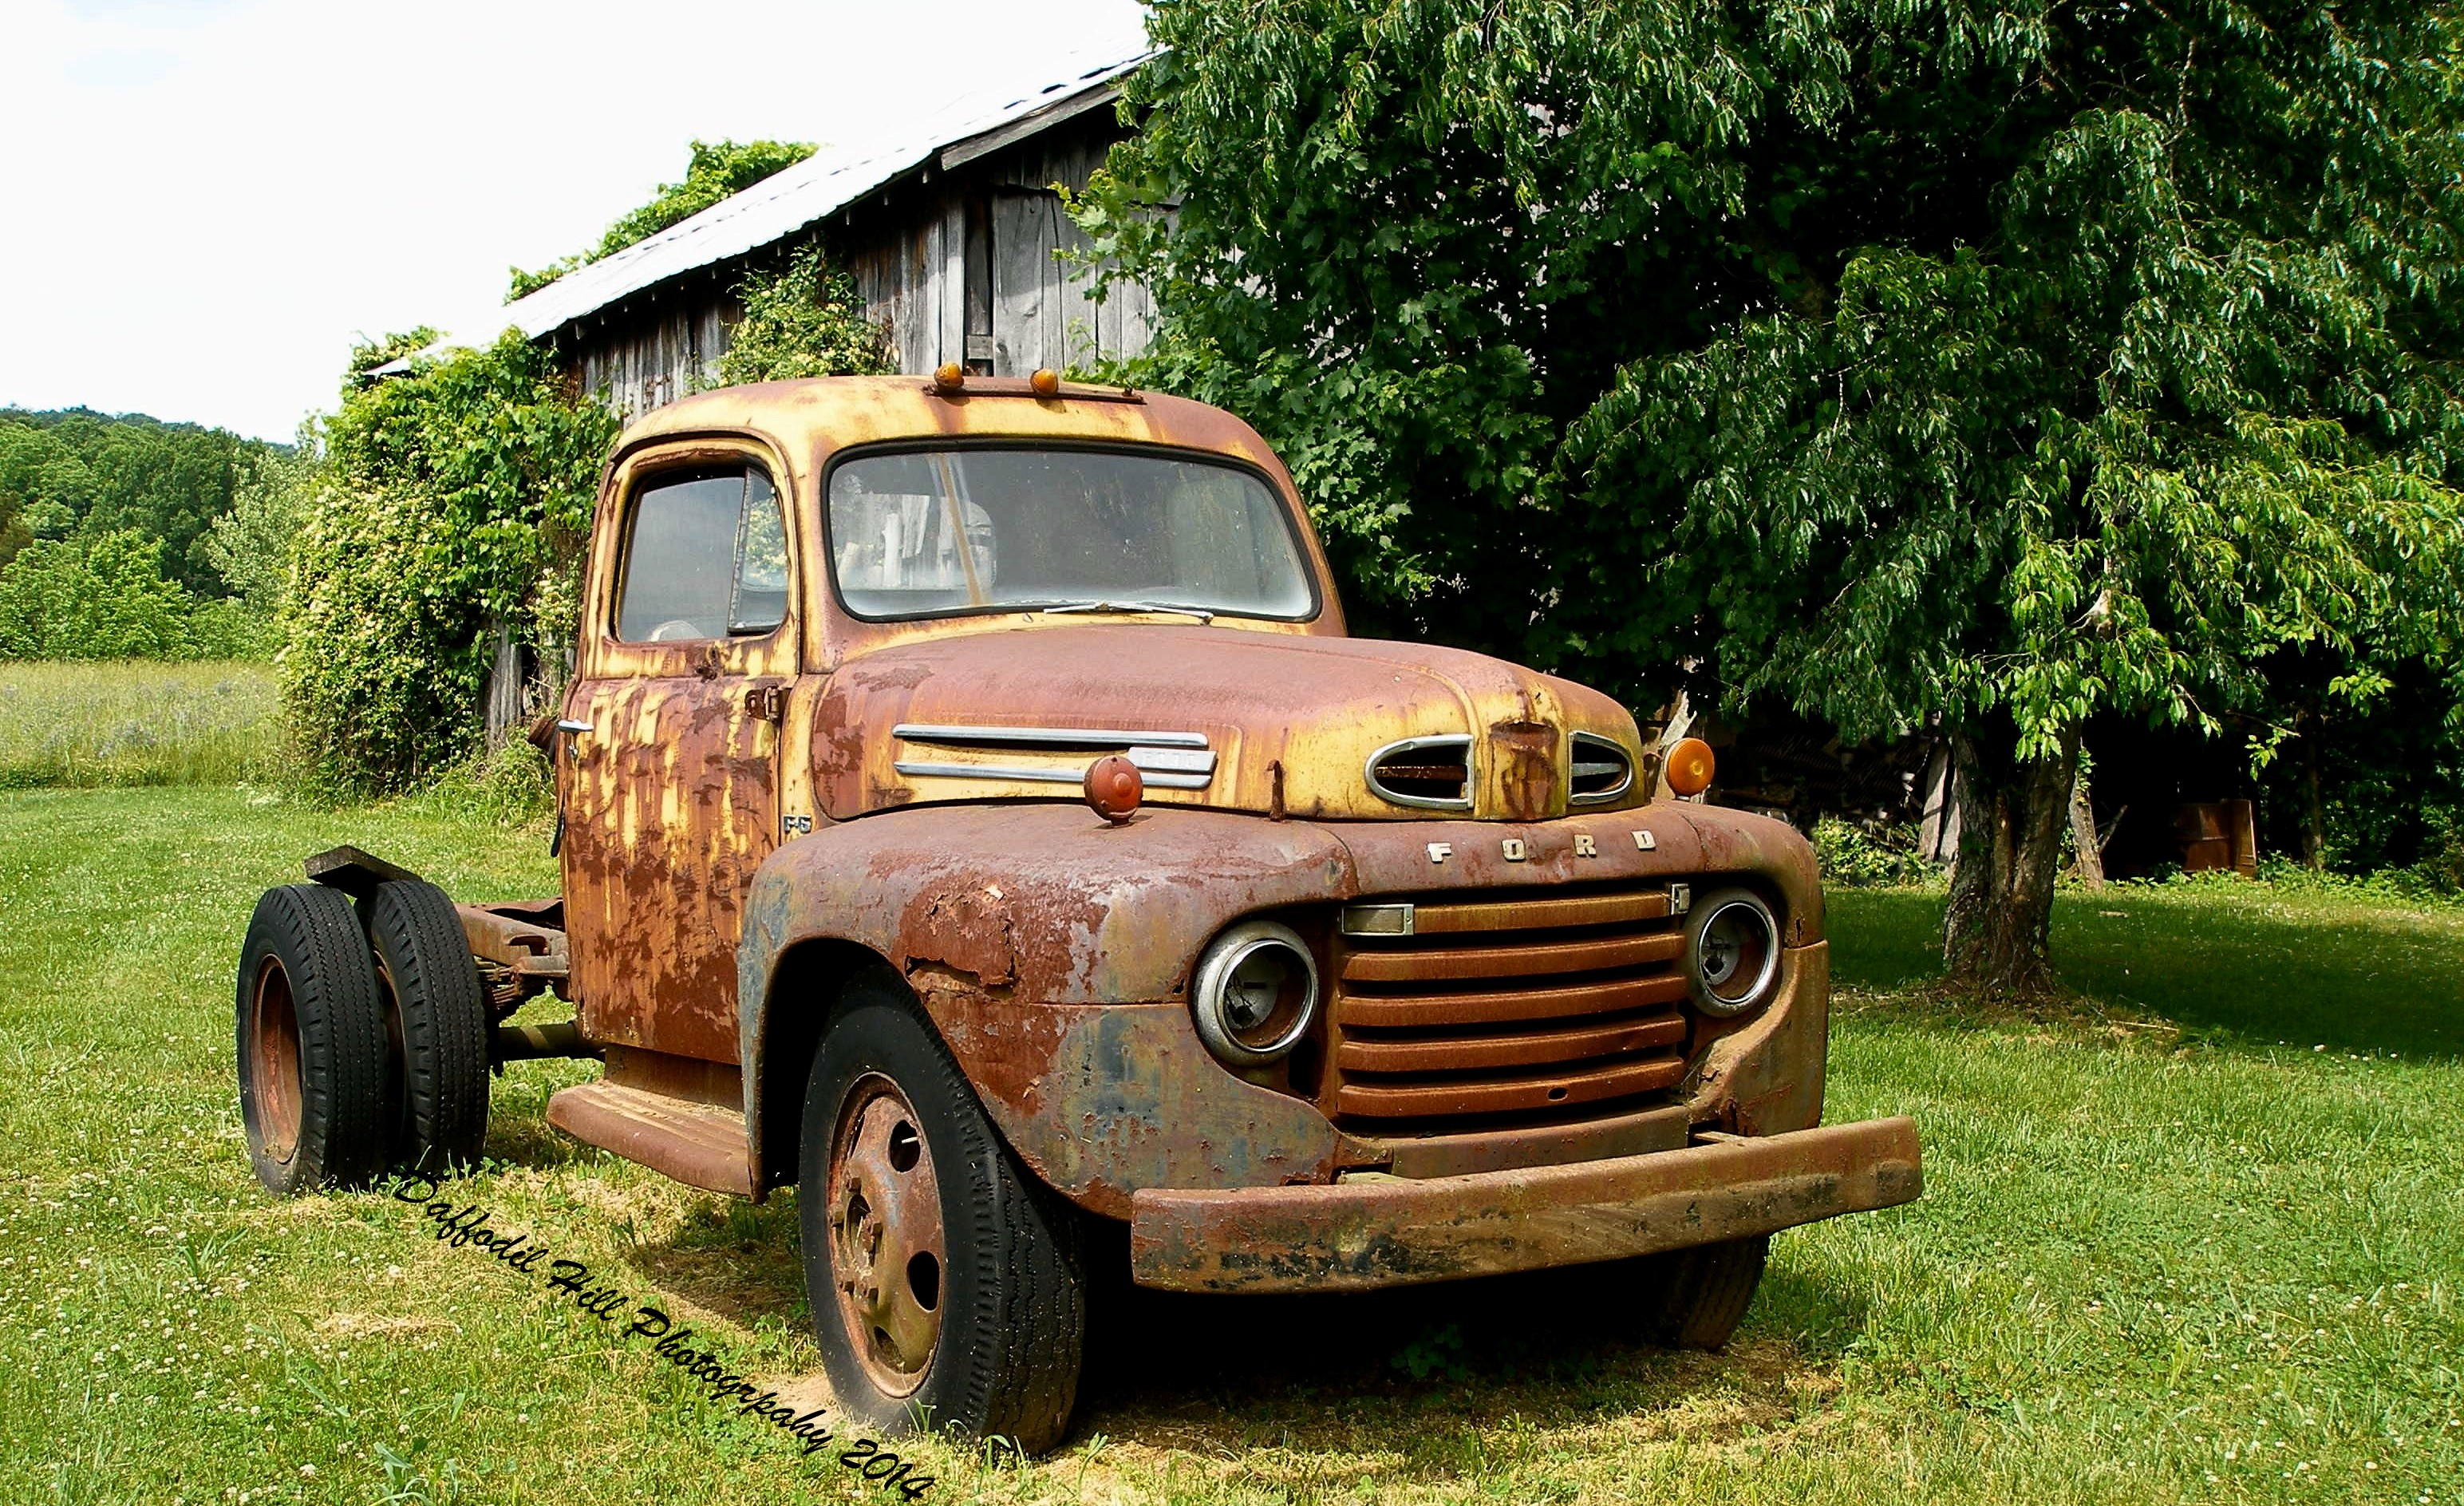 Old Rusty Ford Truck | www.pixshark.com - Images Galleries ...